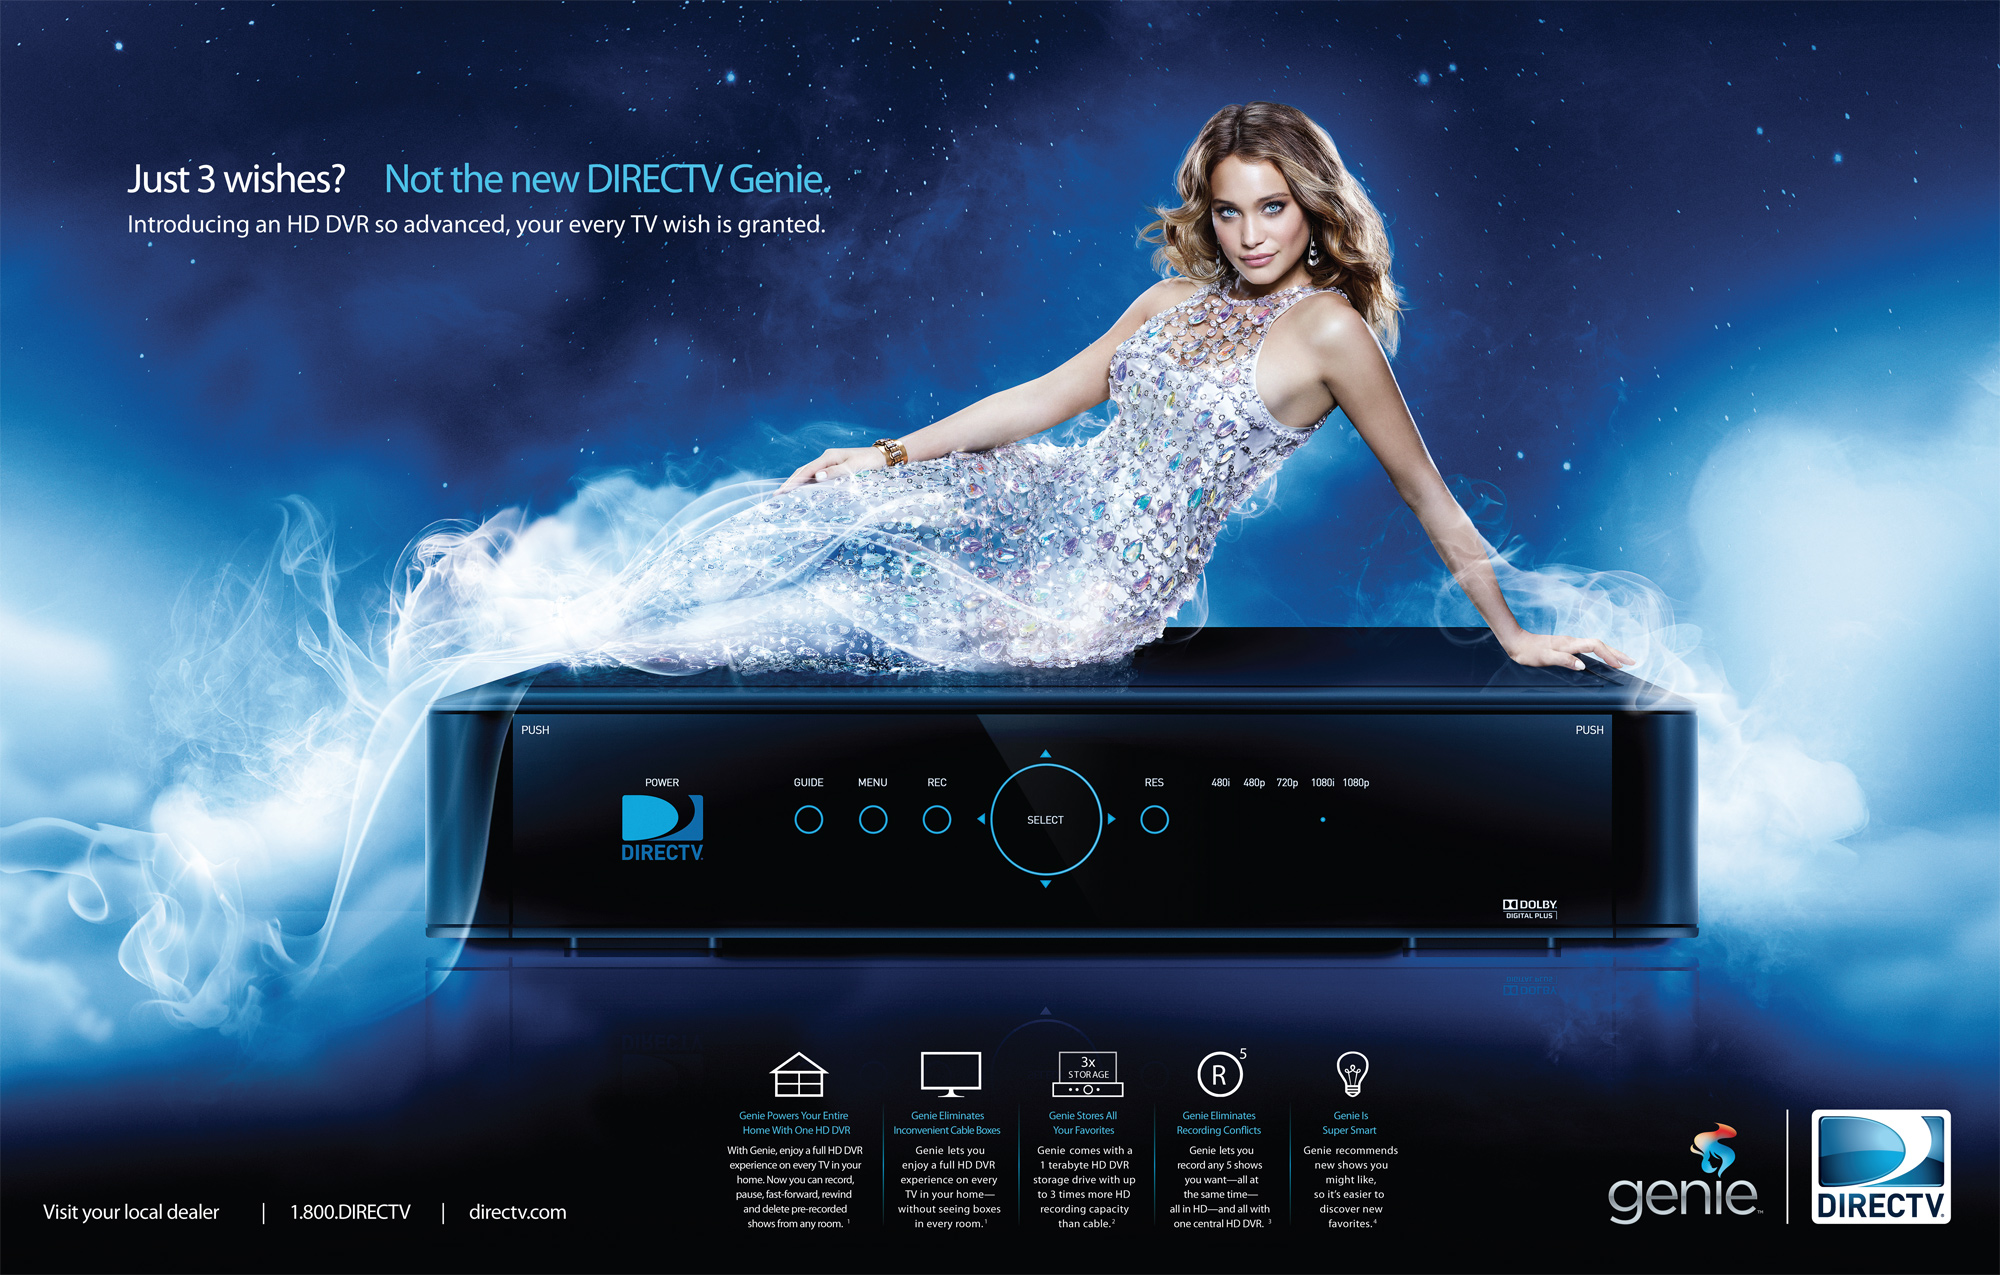 Directv-Genie-by-Robert-Ascroft-DUP.jpg